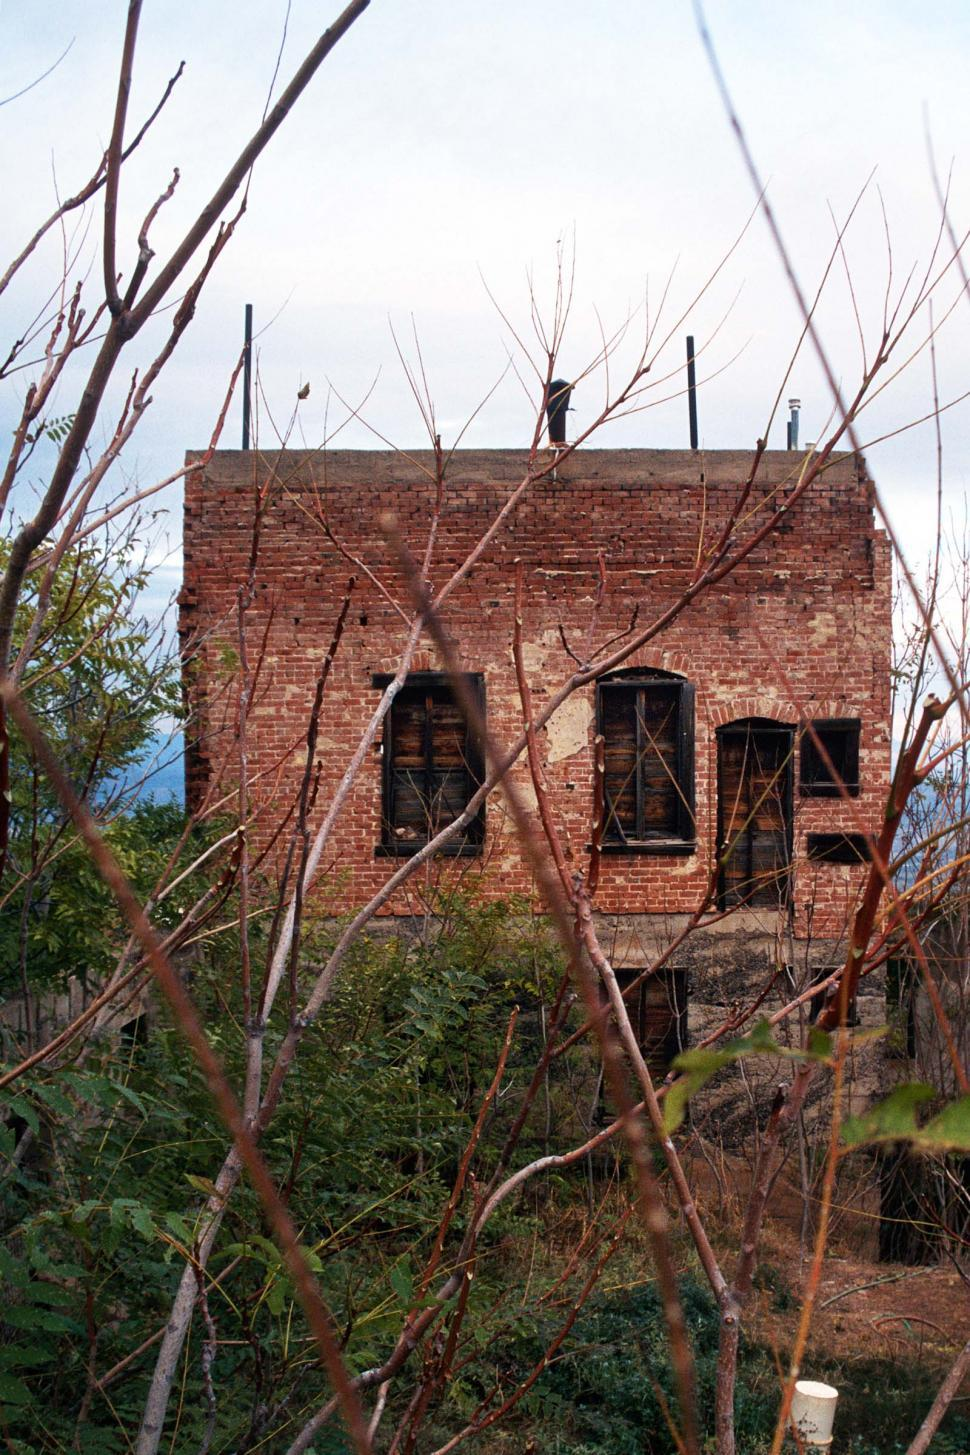 Download Free Stock HD Photo of Old building in Arizona mining town Online